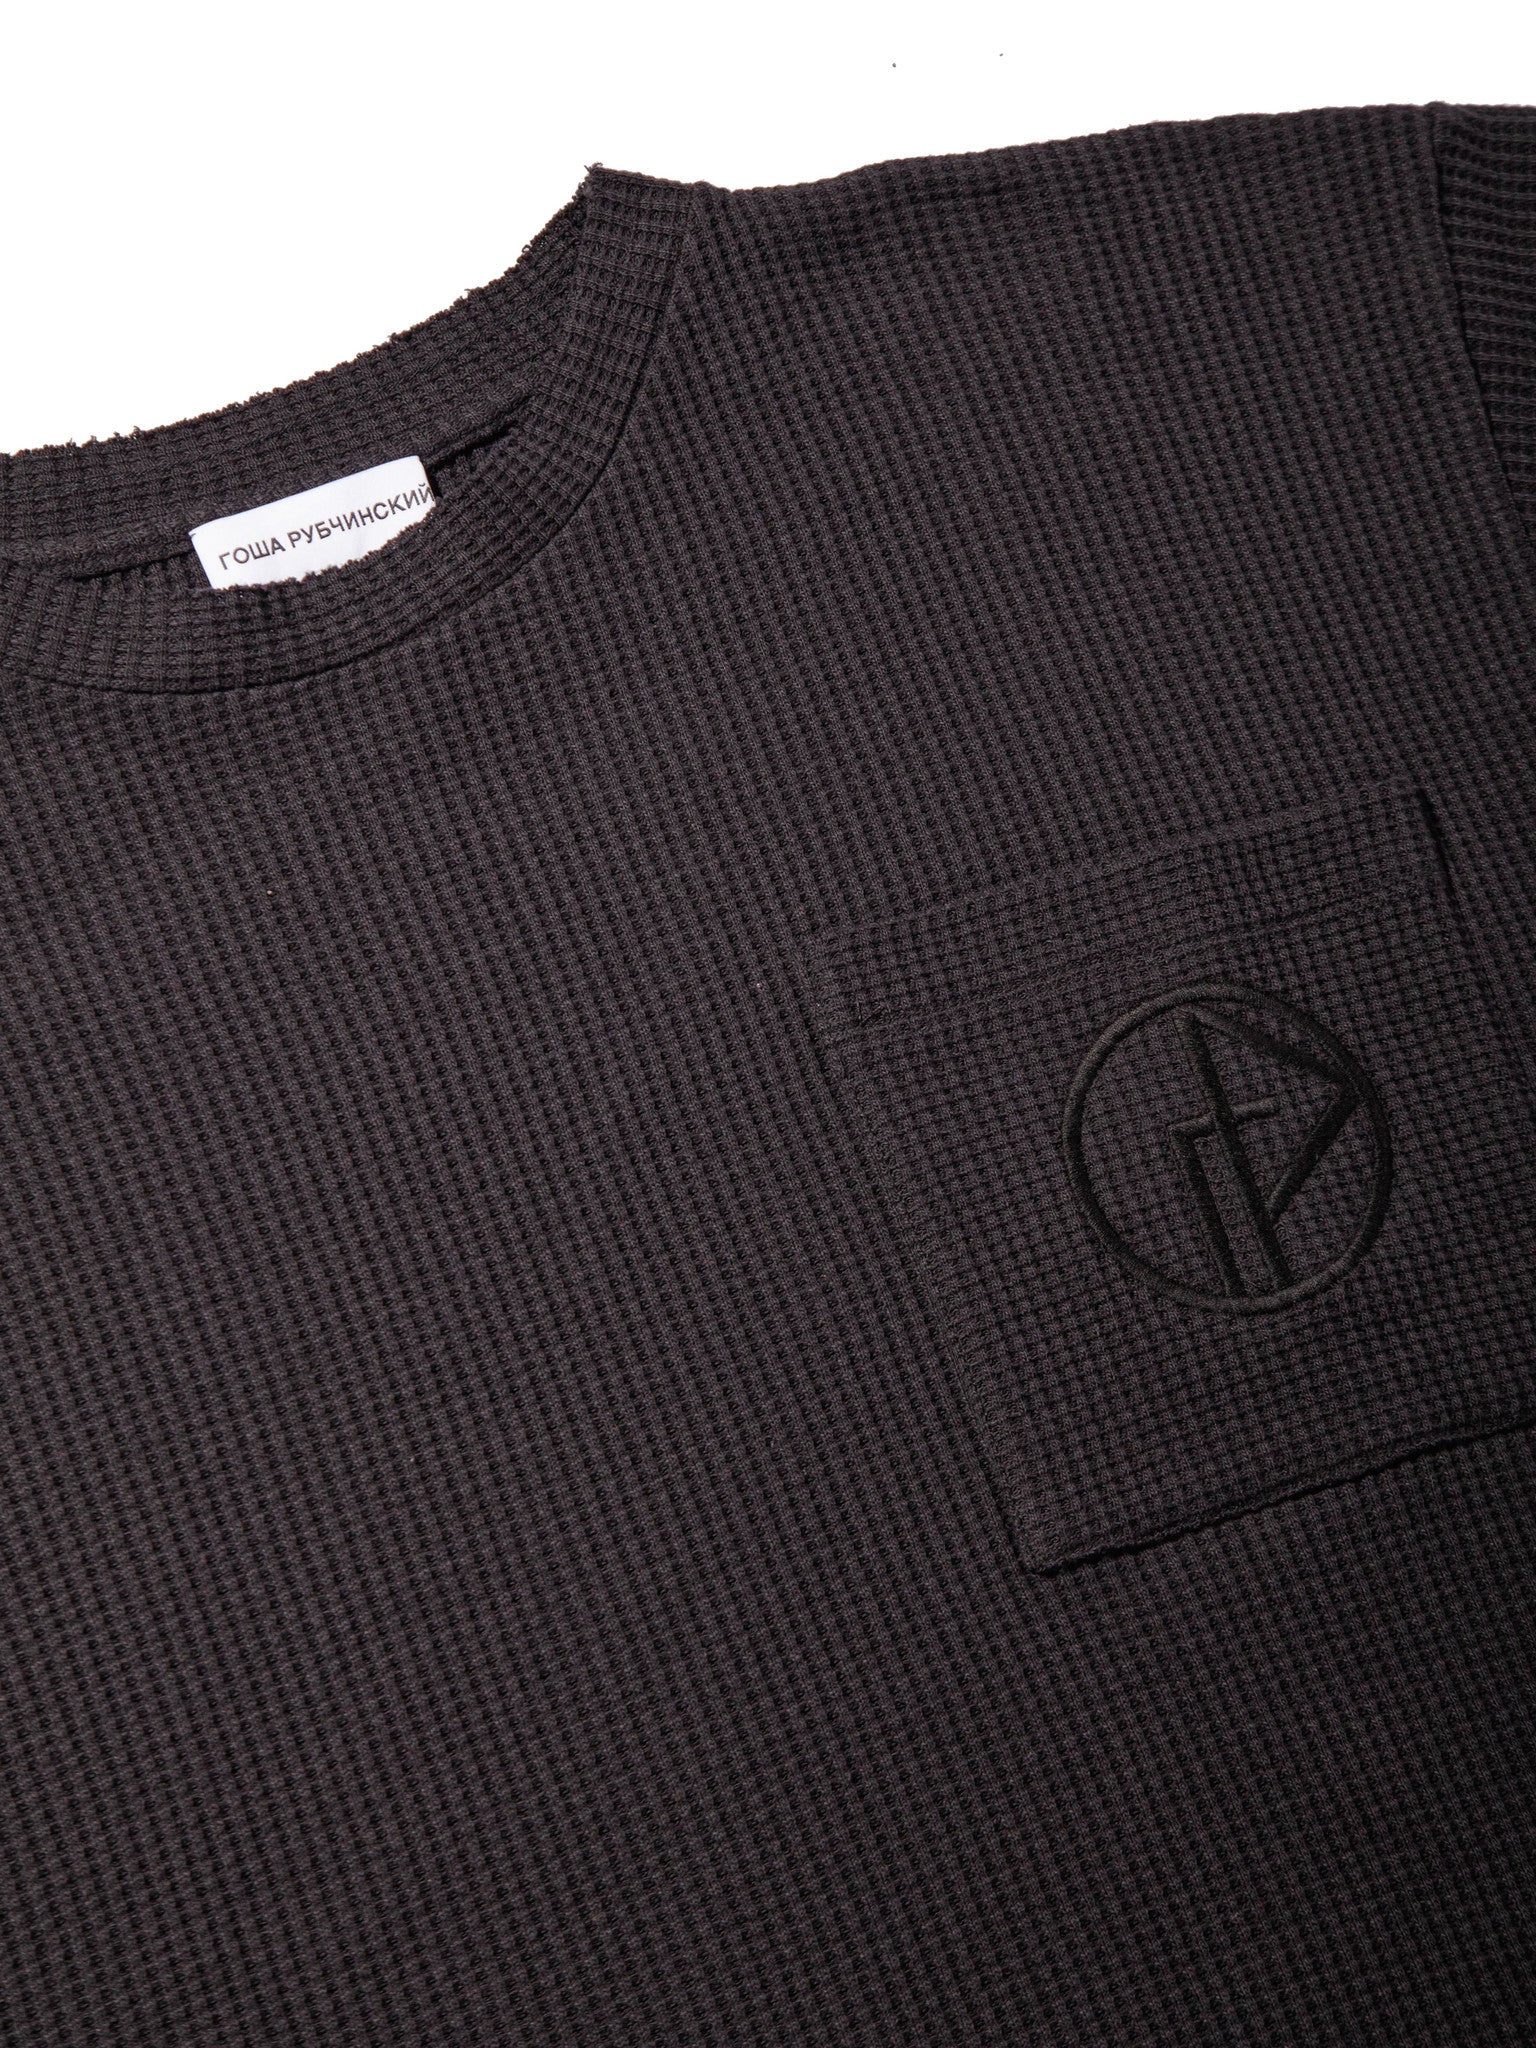 Black Waffle Knit Short Sleeve Sweater 3